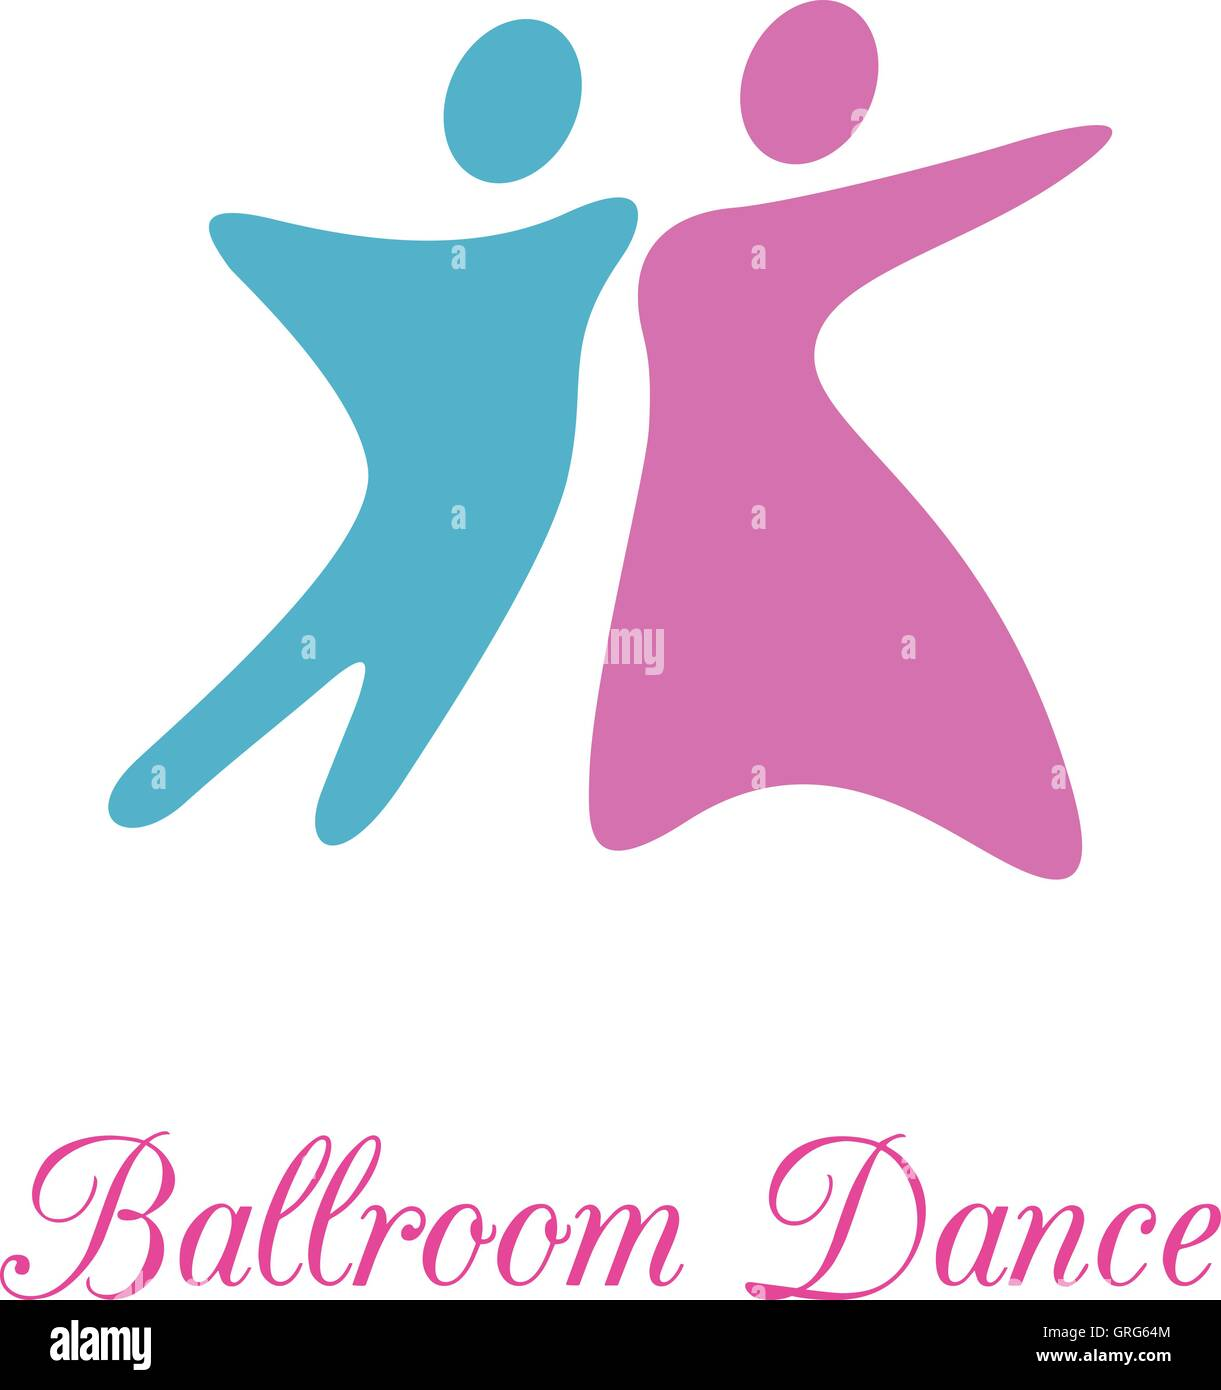 Ballroom Stock Vector Images Alamy Back Gt Gallery For Foxtrot Dance Steps Diagram Dancing Couple Class Or Lessons Concept